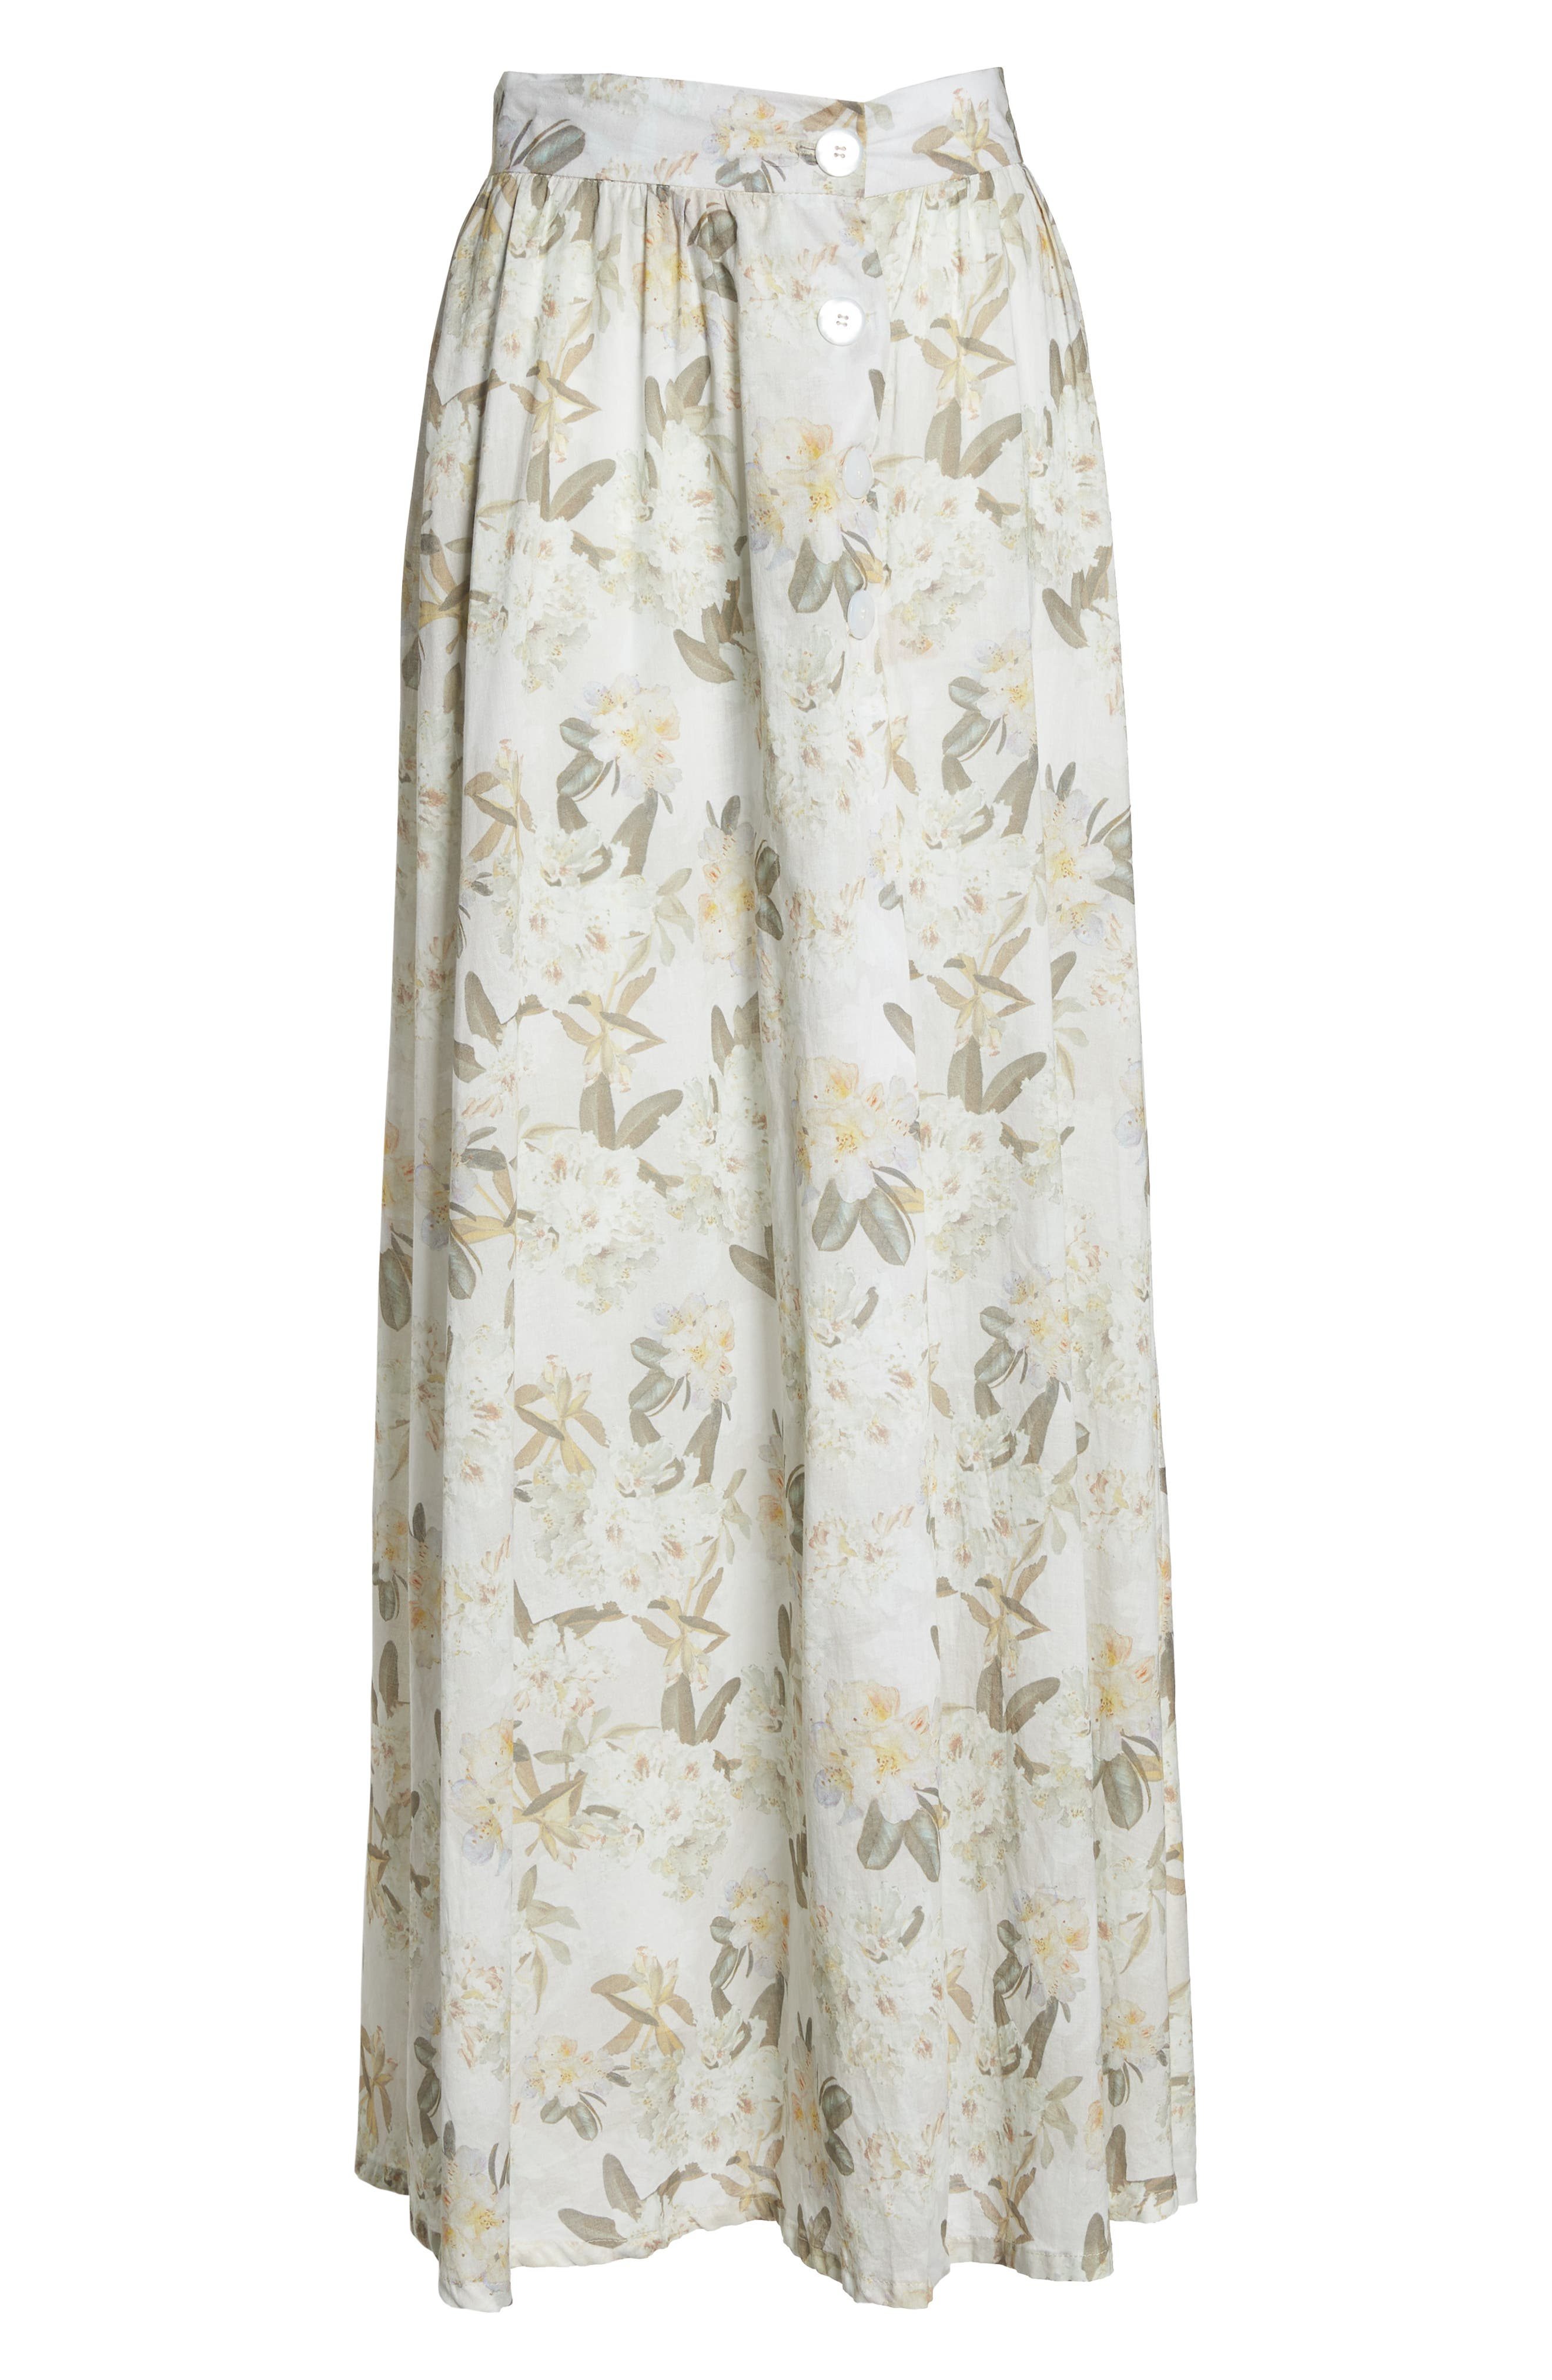 Edith Cover-Up Maxi Skirt,                             Alternate thumbnail 6, color,                             100